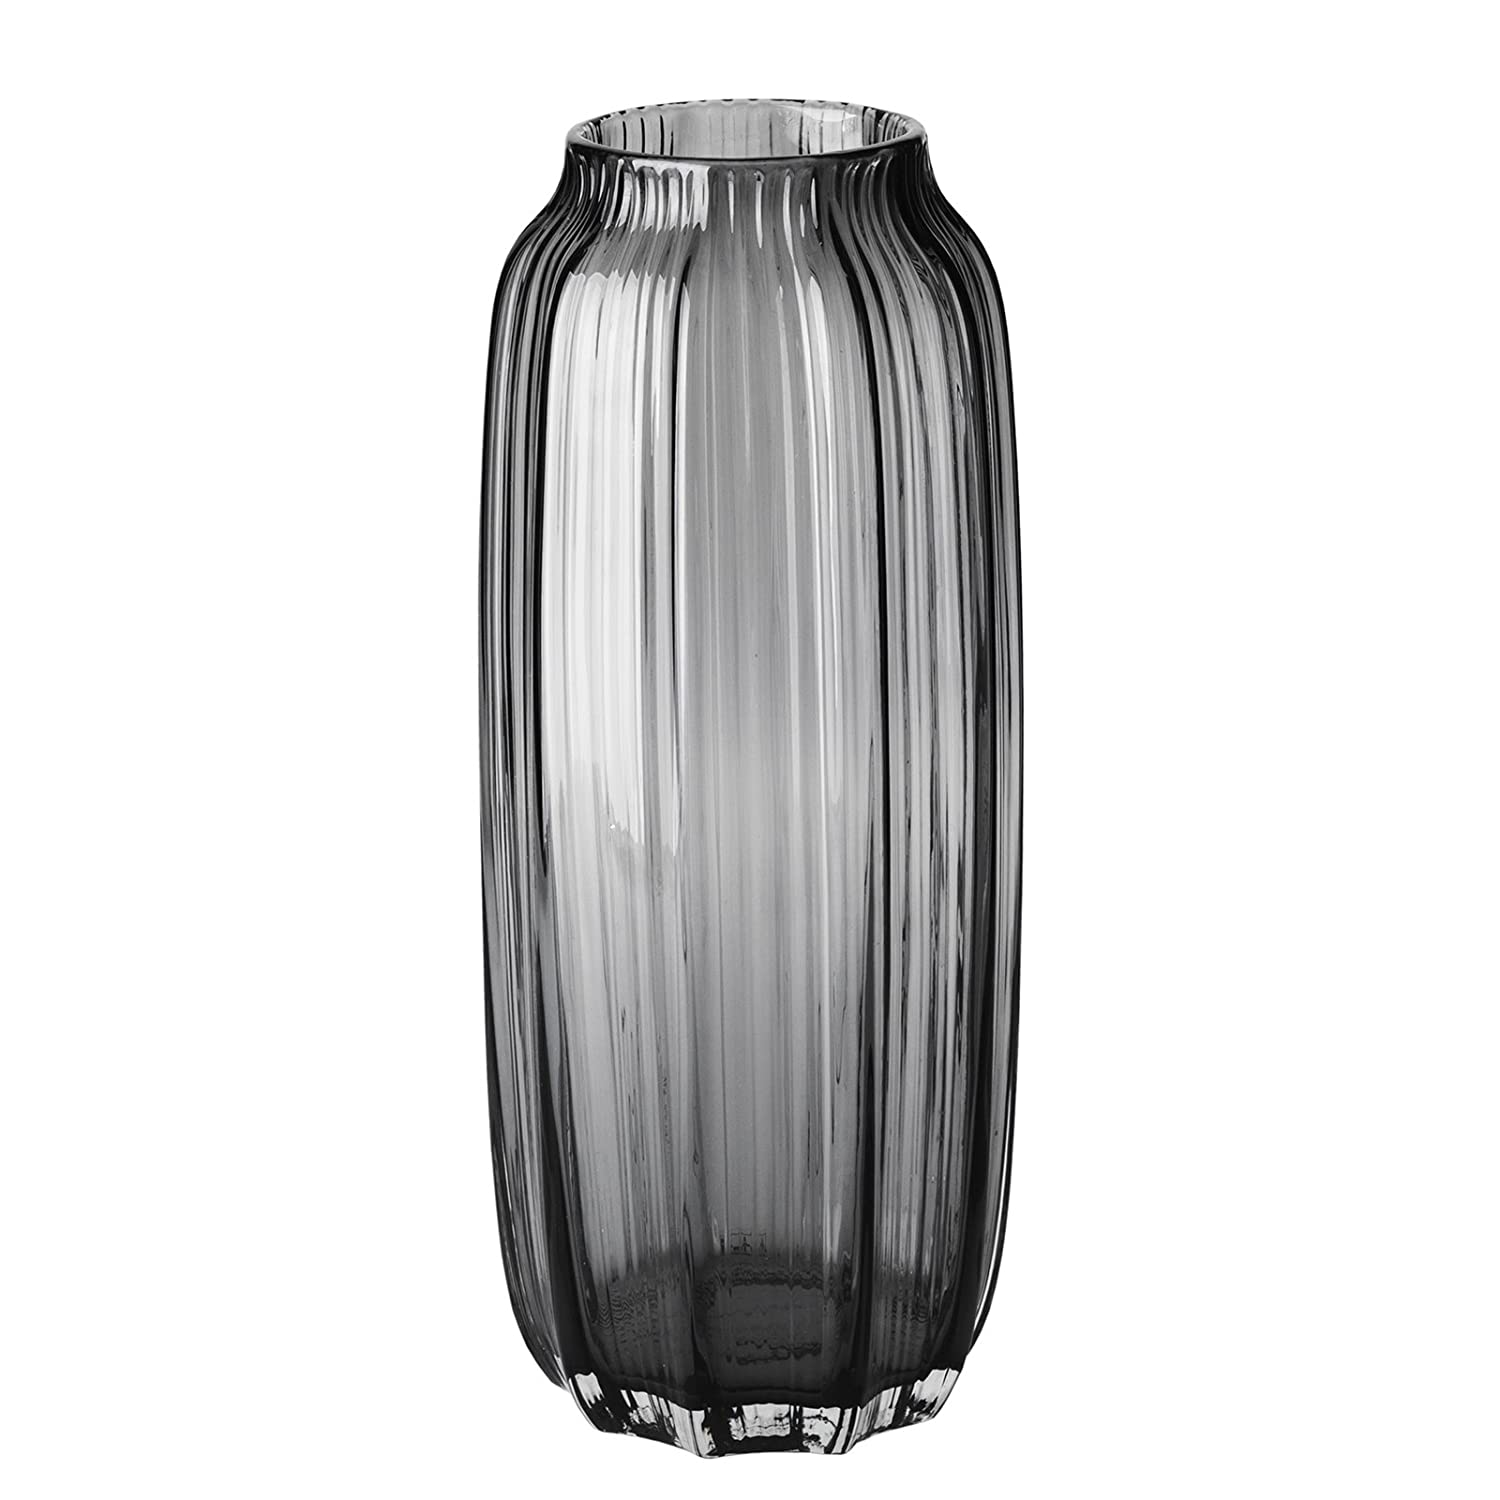 CASAMOTION Vase Hand Blown Ribbed Glass Vase,Tabletop Centerpiece Vases,Décor Gift Box,Smoke,20cm H